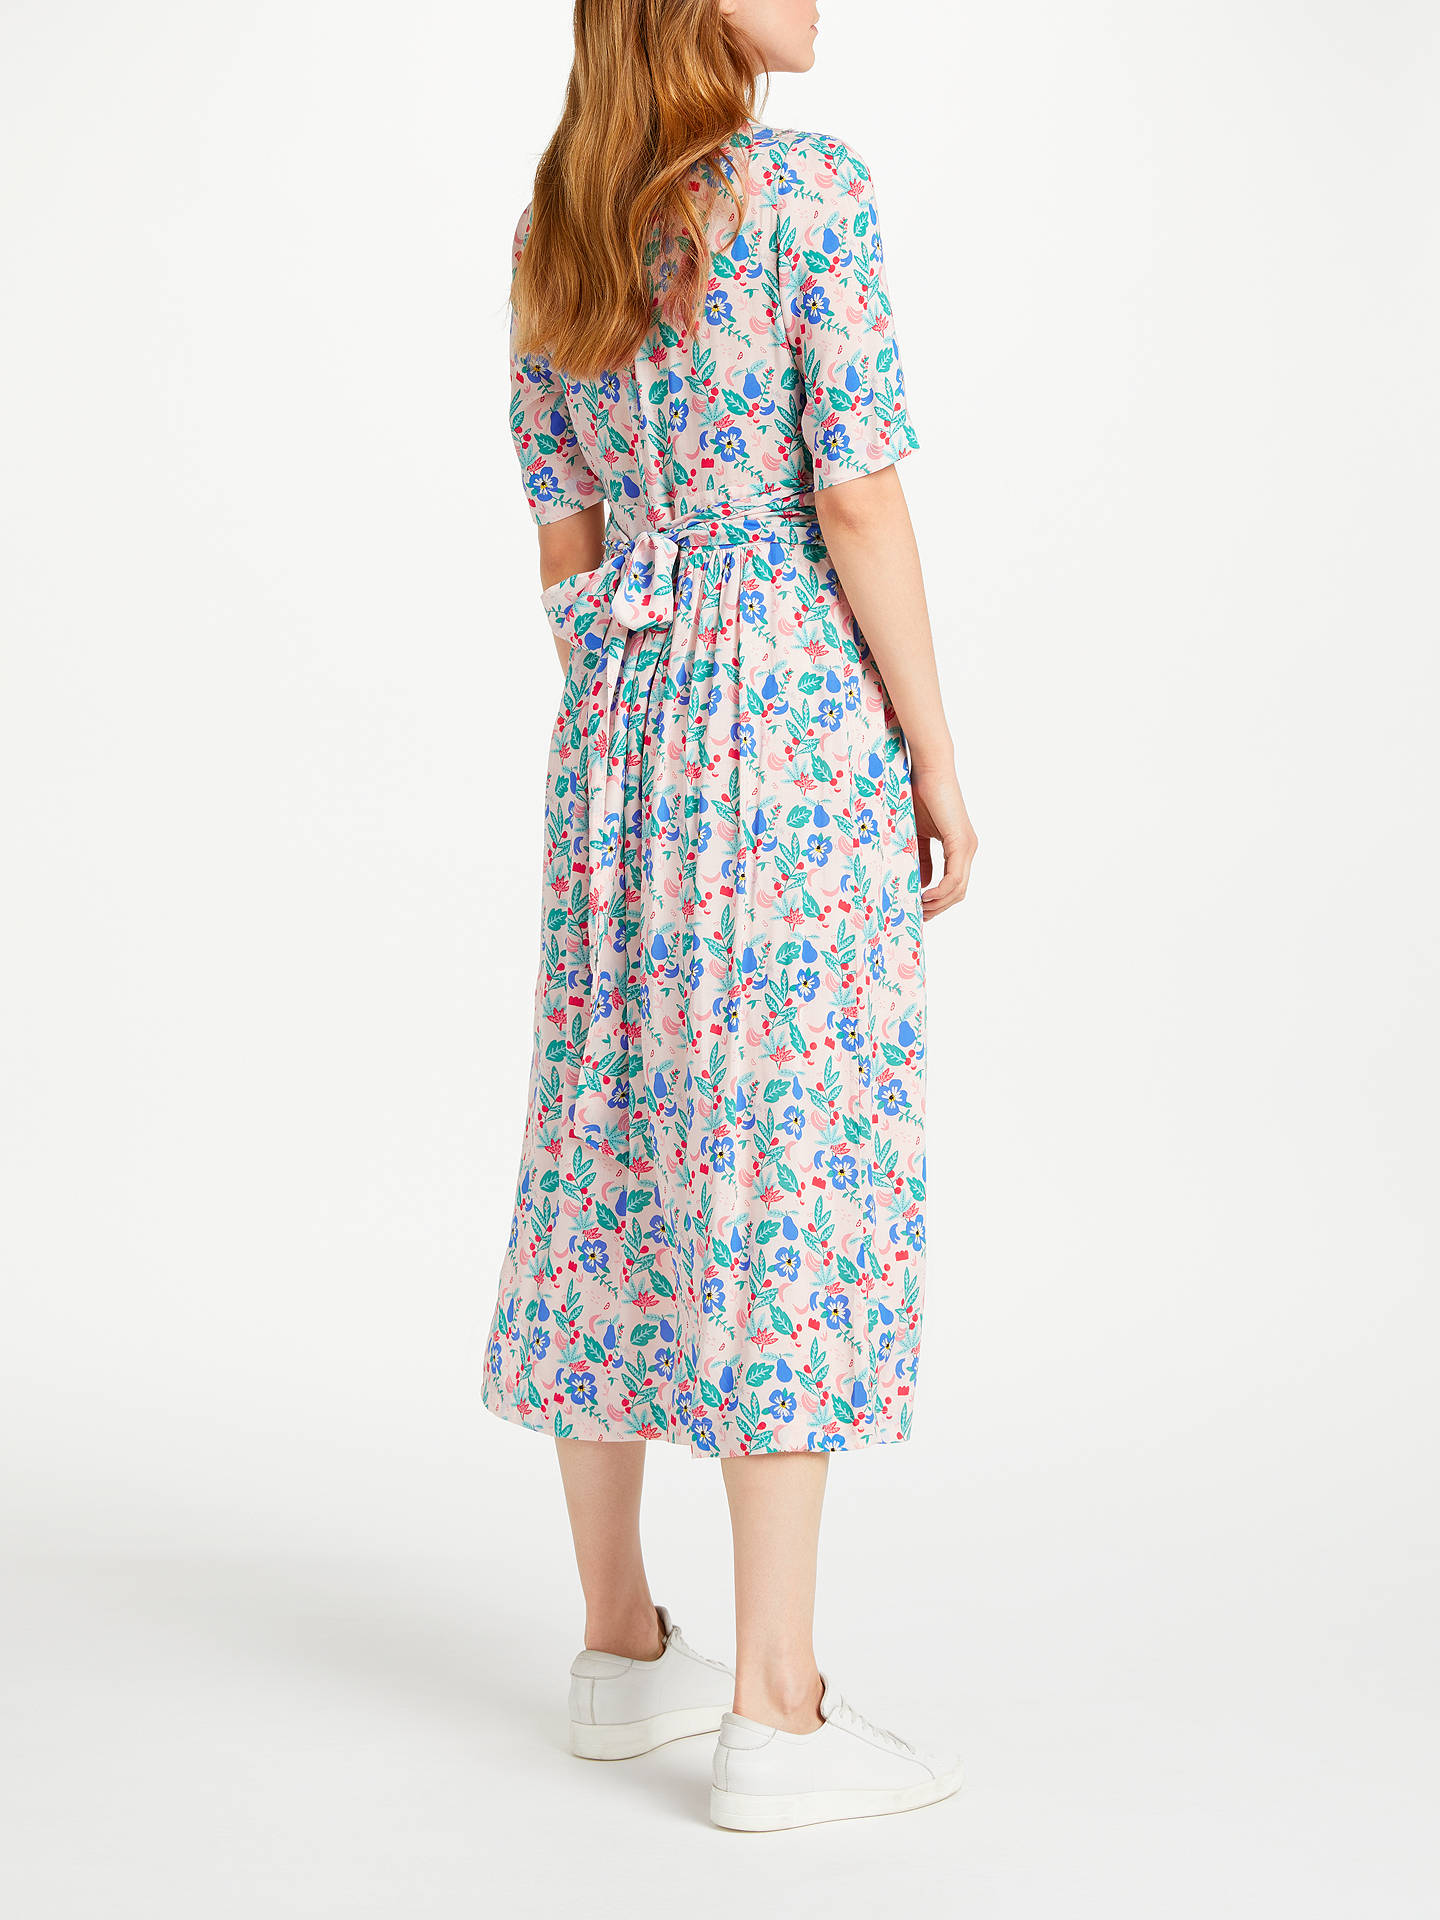 BuyDes Petits Hauts Tango Floral Print Dress, Multi, 8 Online at johnlewis.com